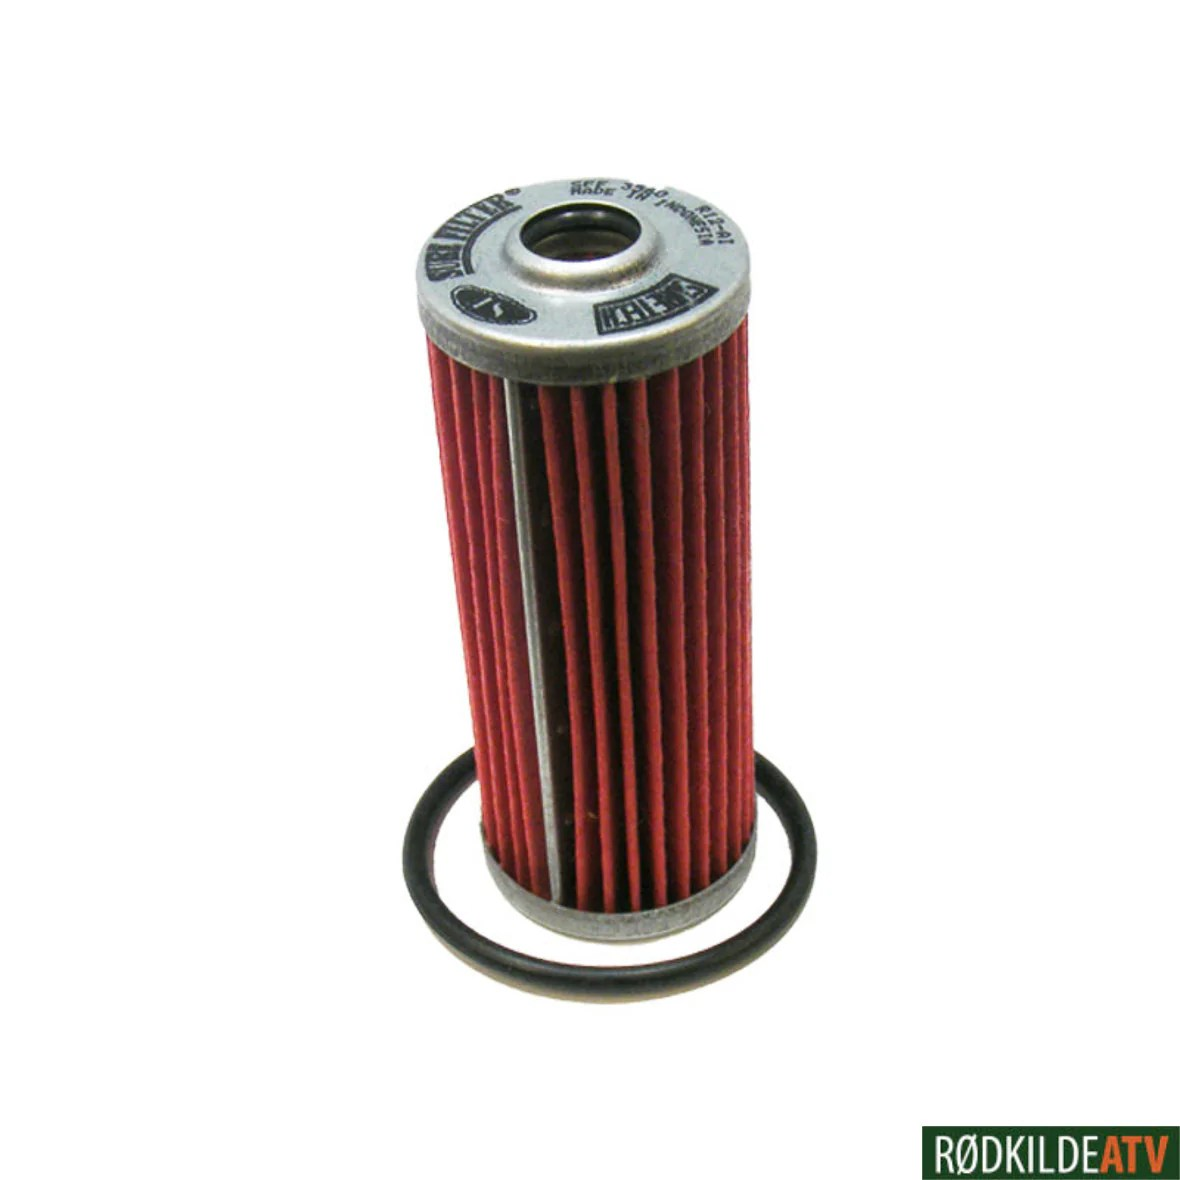 small resolution of 170 5070 fuel filter jd gator 855d m801101 mule prox 49019 0026 r dkilde atv